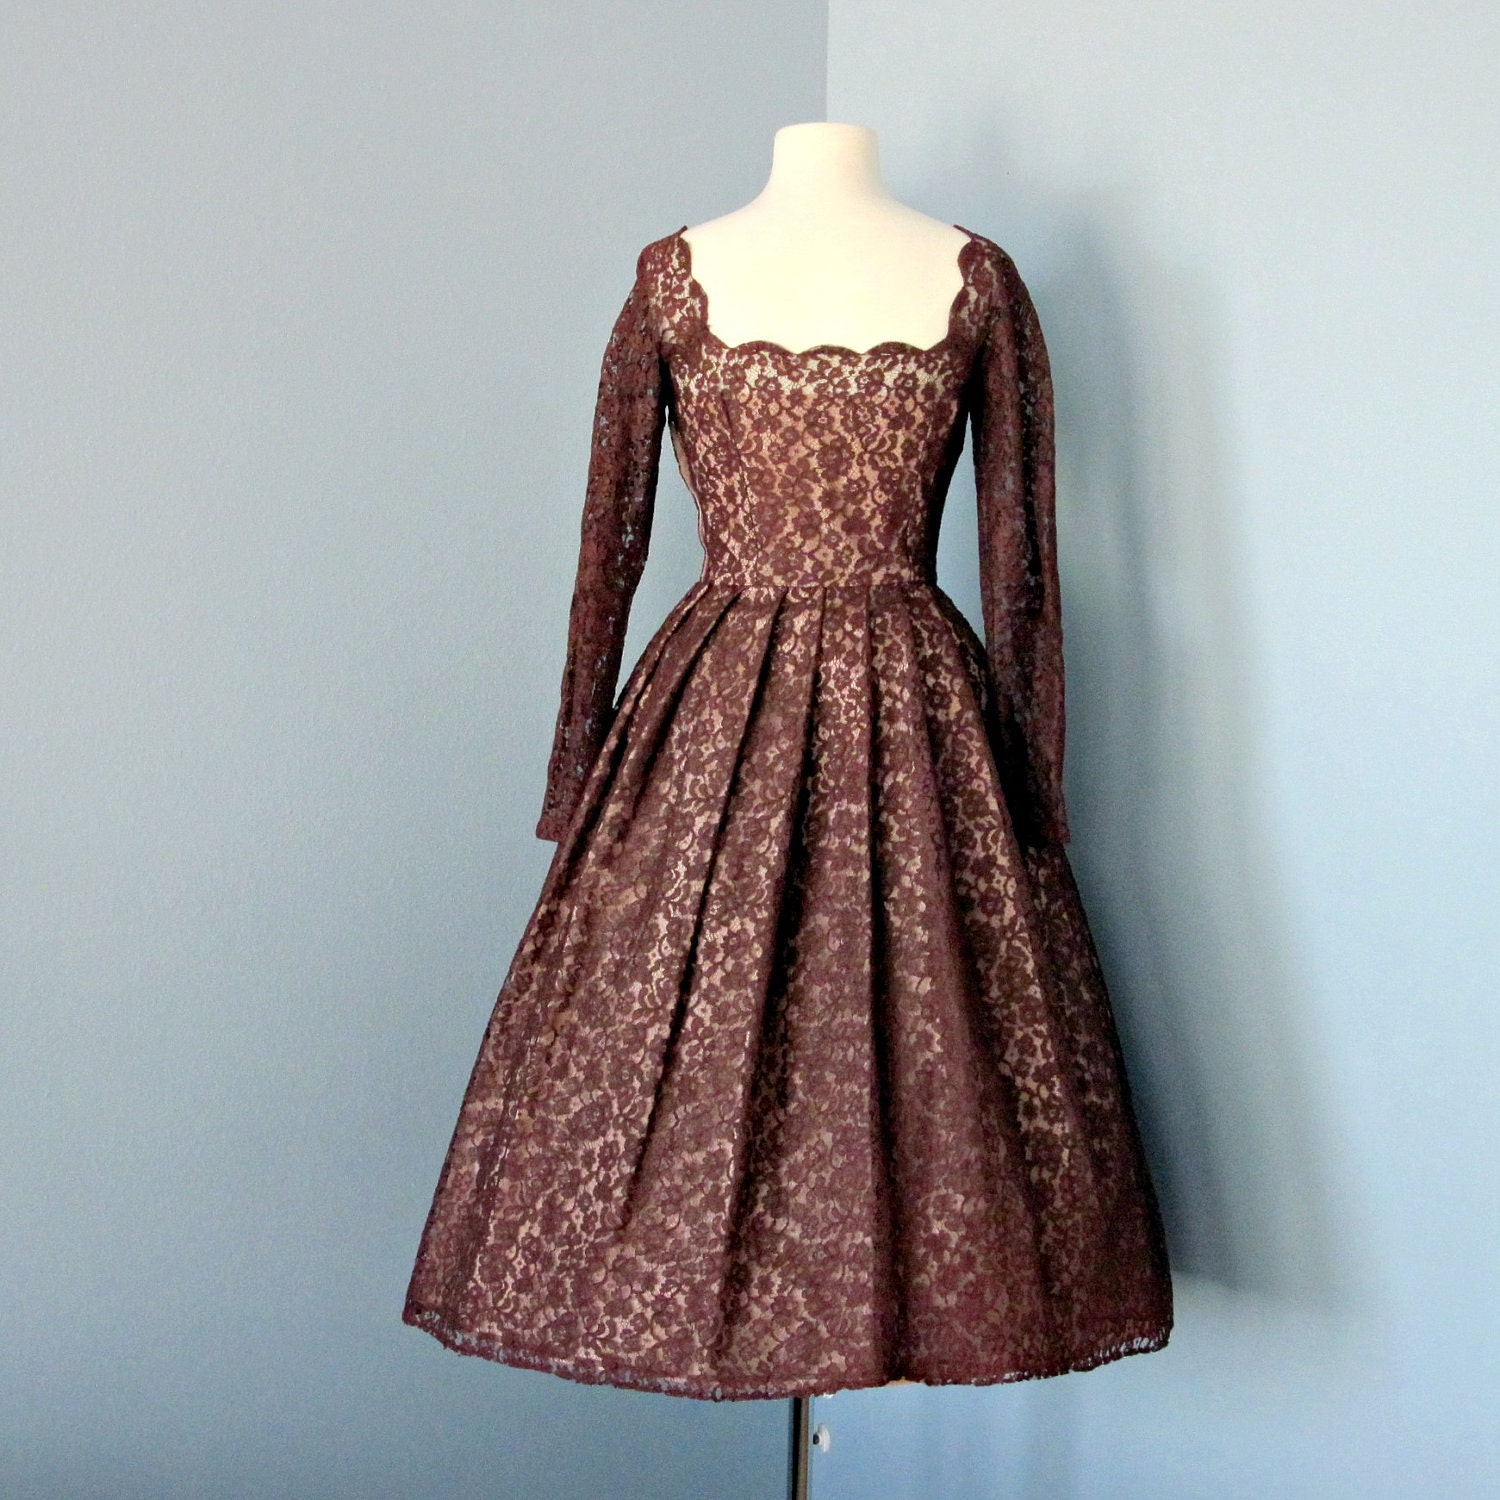 Vintage 1950 39 s lace party dress rich chocolate brown by for Brown lace wedding dress